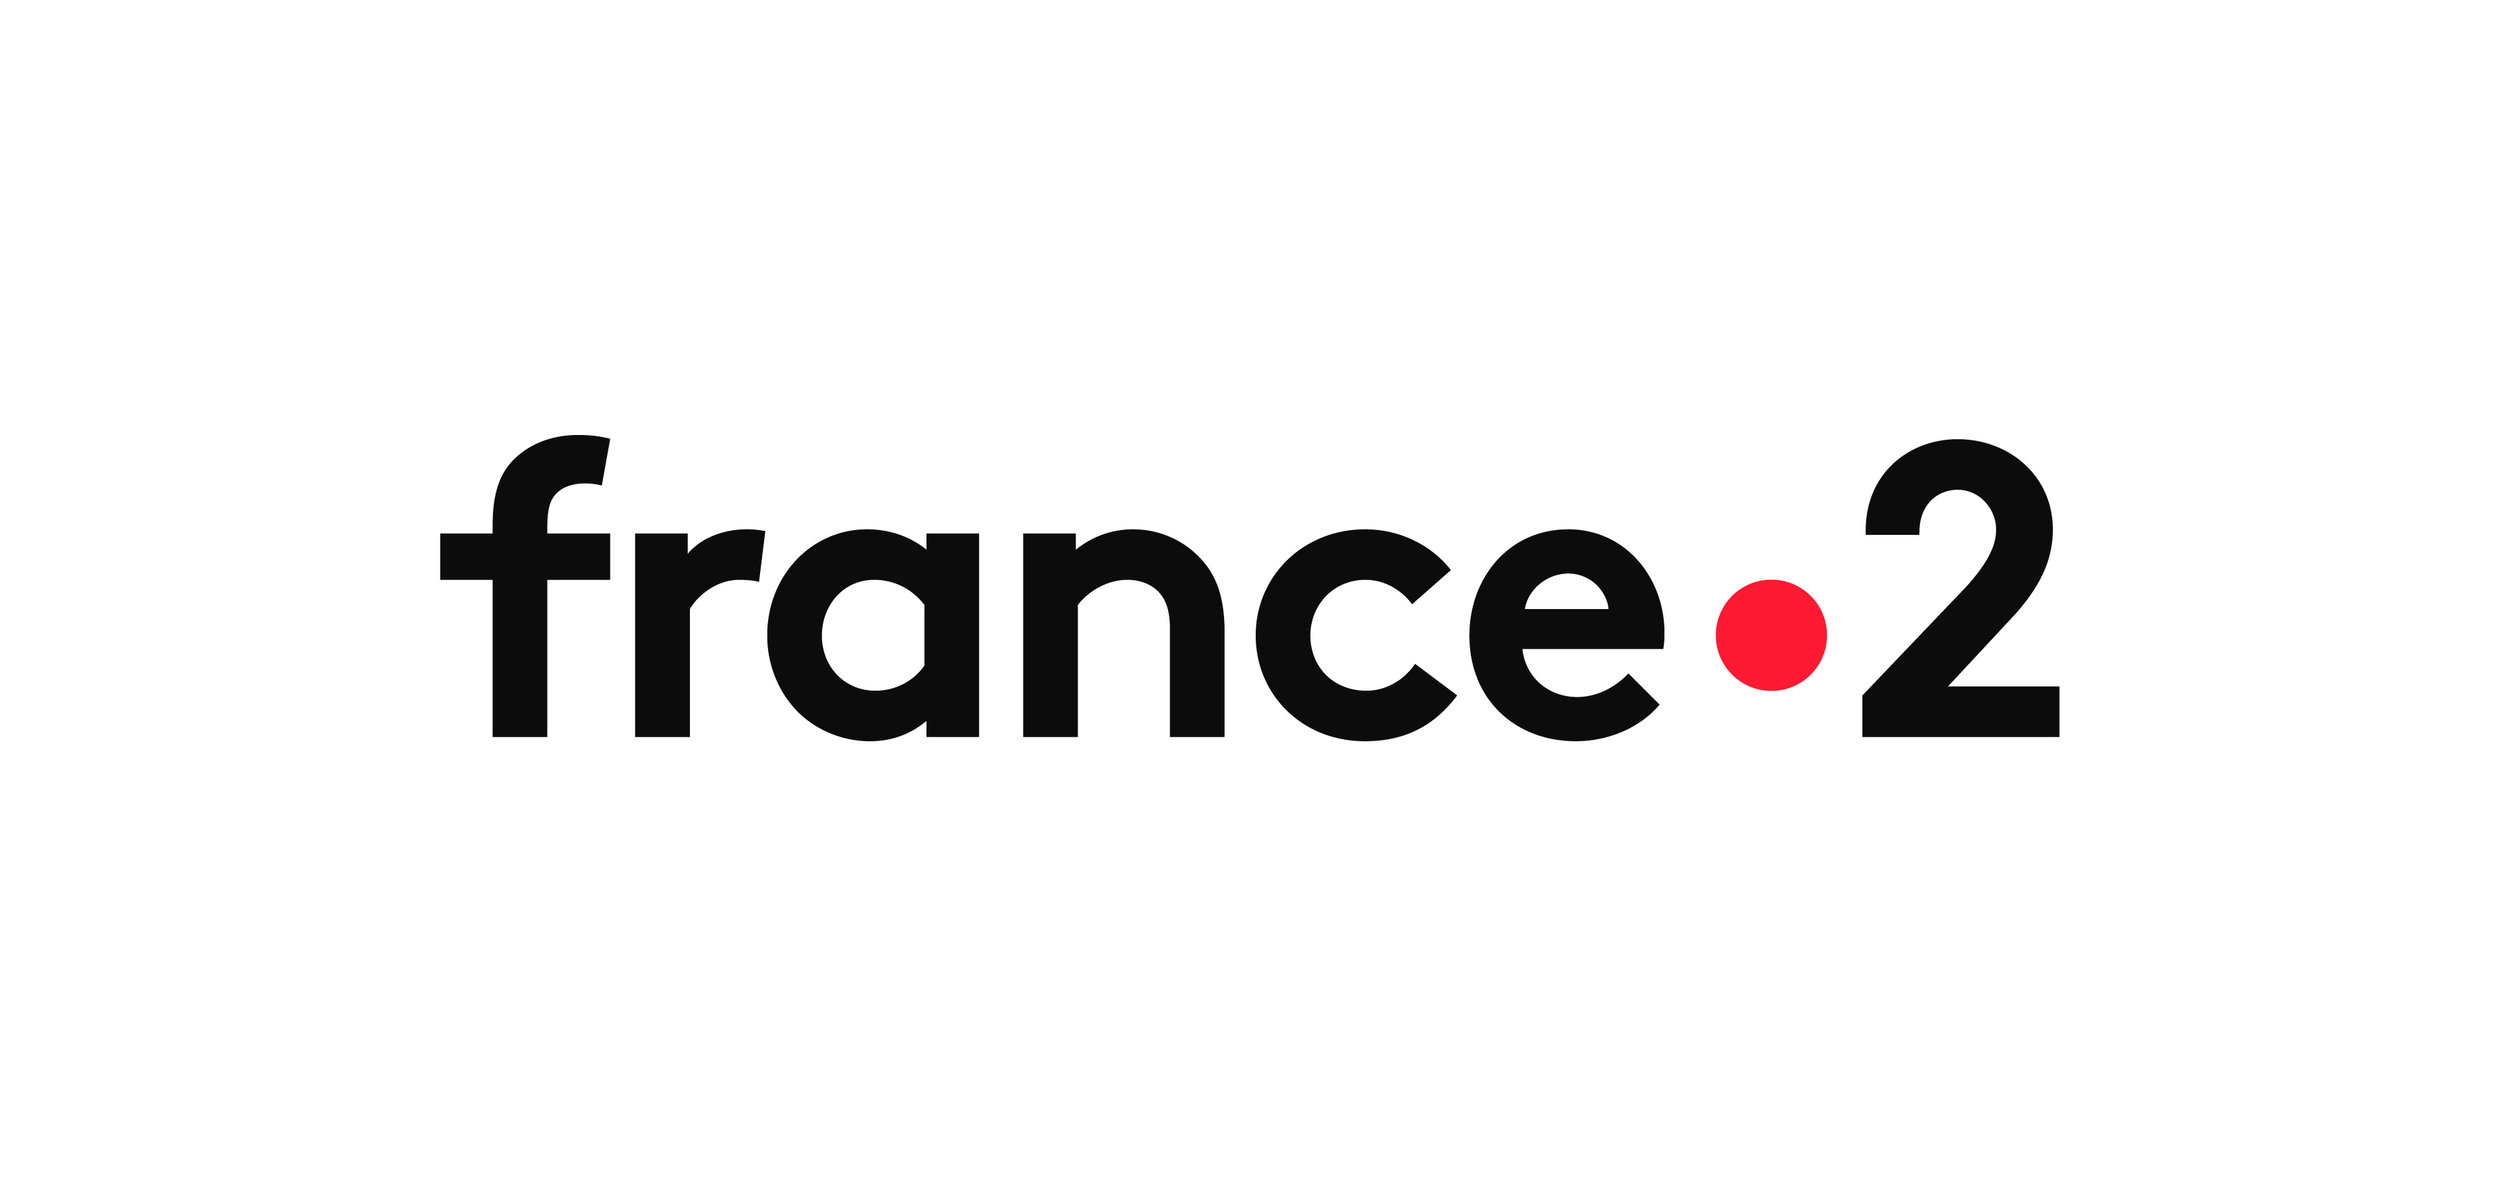 france_2_logo_cmjn_france_couleur_noir-.jpg